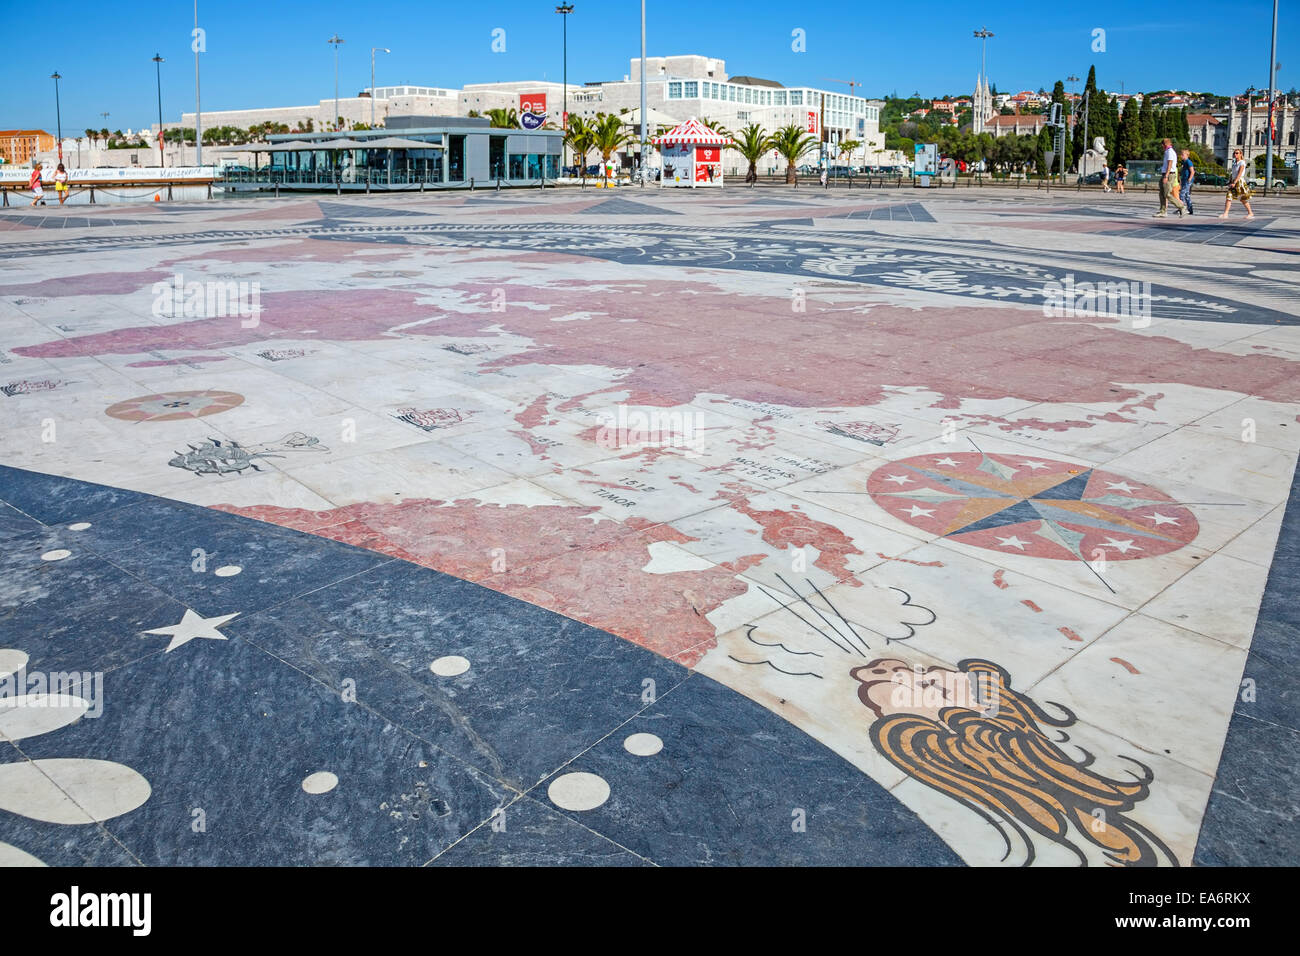 World map in Padrao dos Descobrimentos, Monument to Discoveries, with the explorations made by the Portuguese. CCB - Stock Image